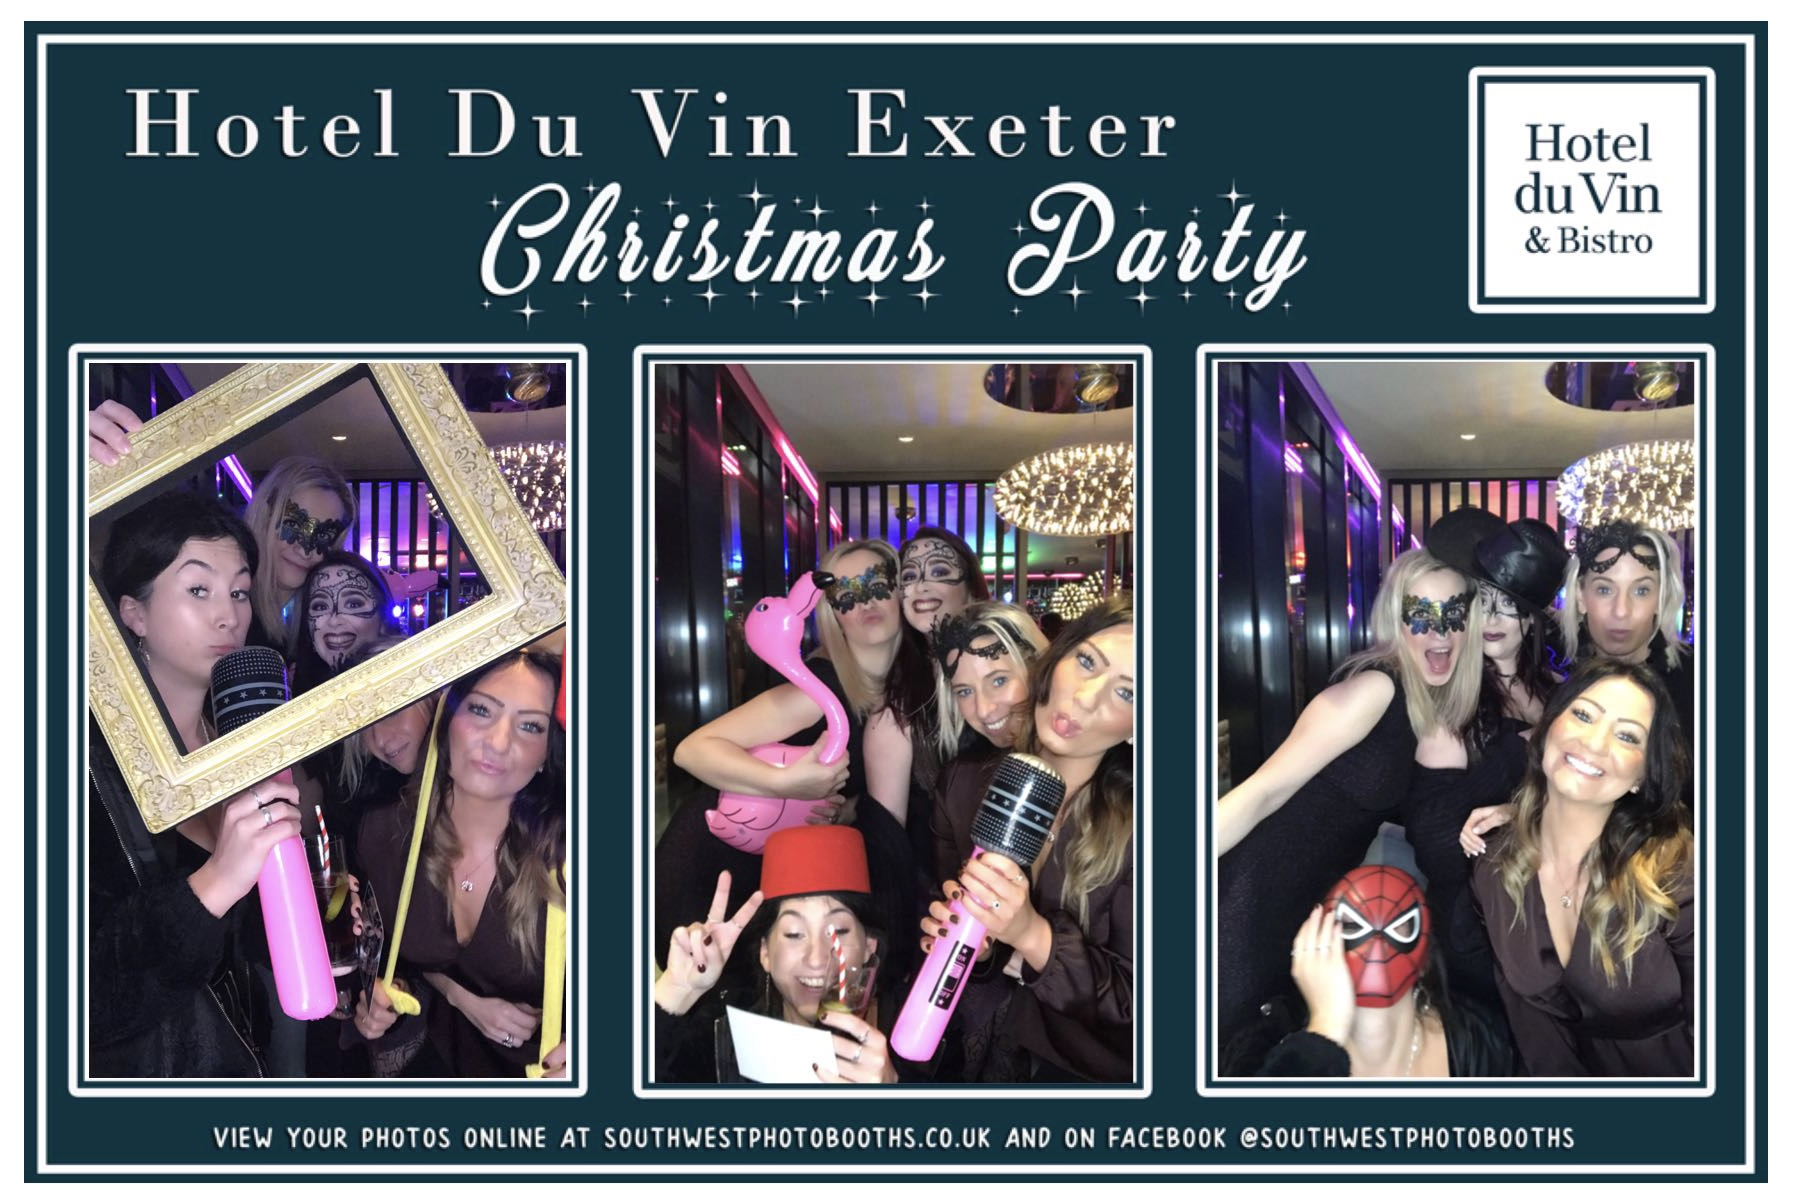 Hotel Du Vin Exeter Christmas Party | View more photos from the event at gallery.southwestphotobooths.co.uk/u/SWPB/Hotel-Du-Vin-Exeter-Christmas-Party